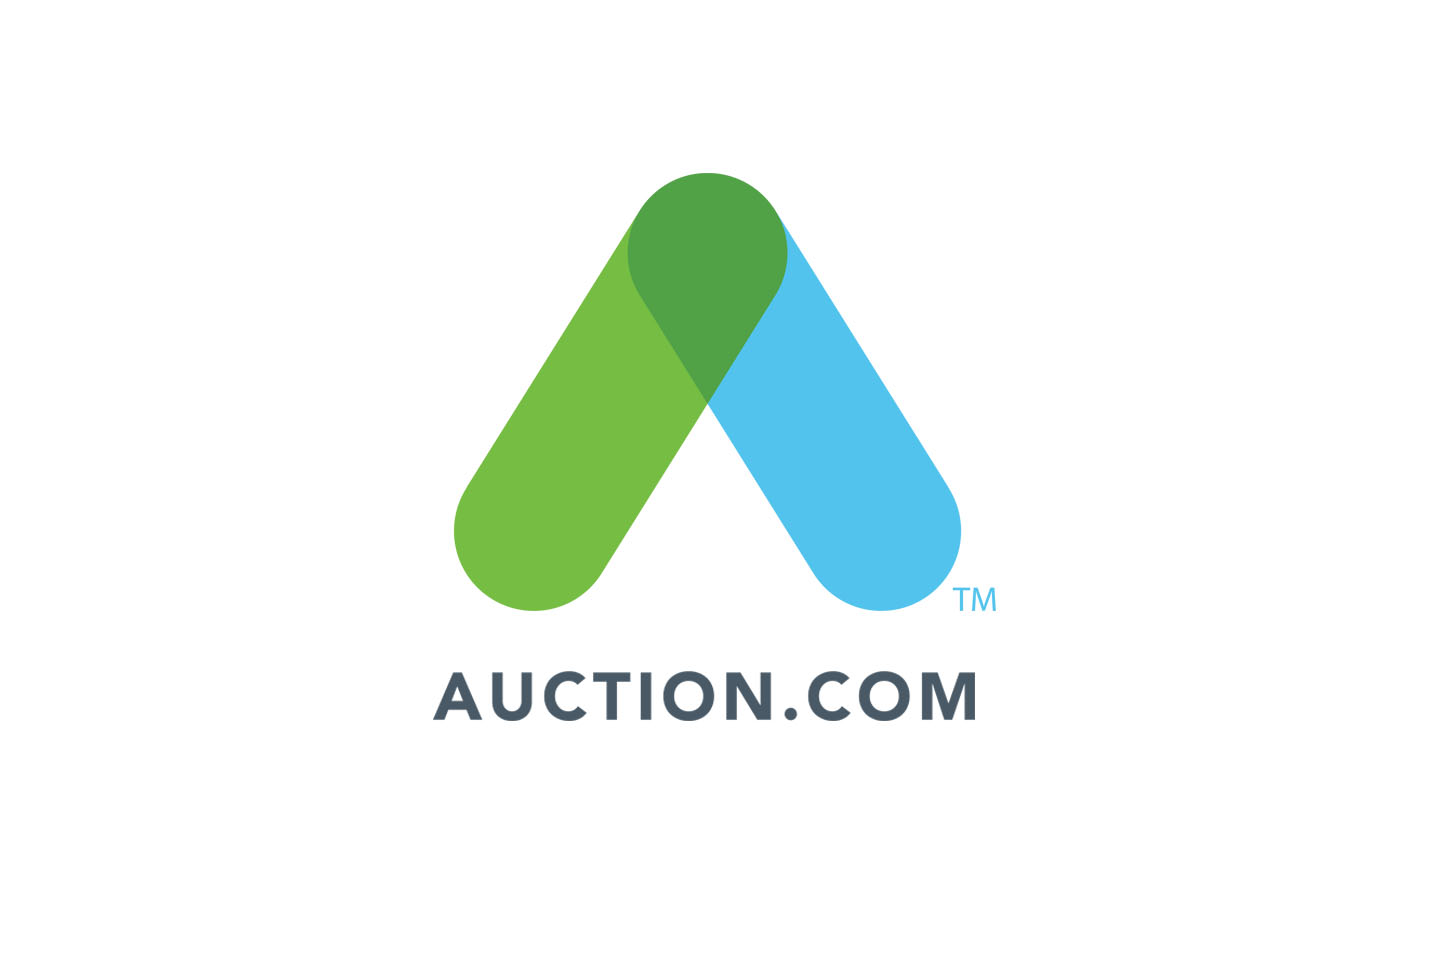 Auction.com new corporate identity by Blue C creative marketing agency